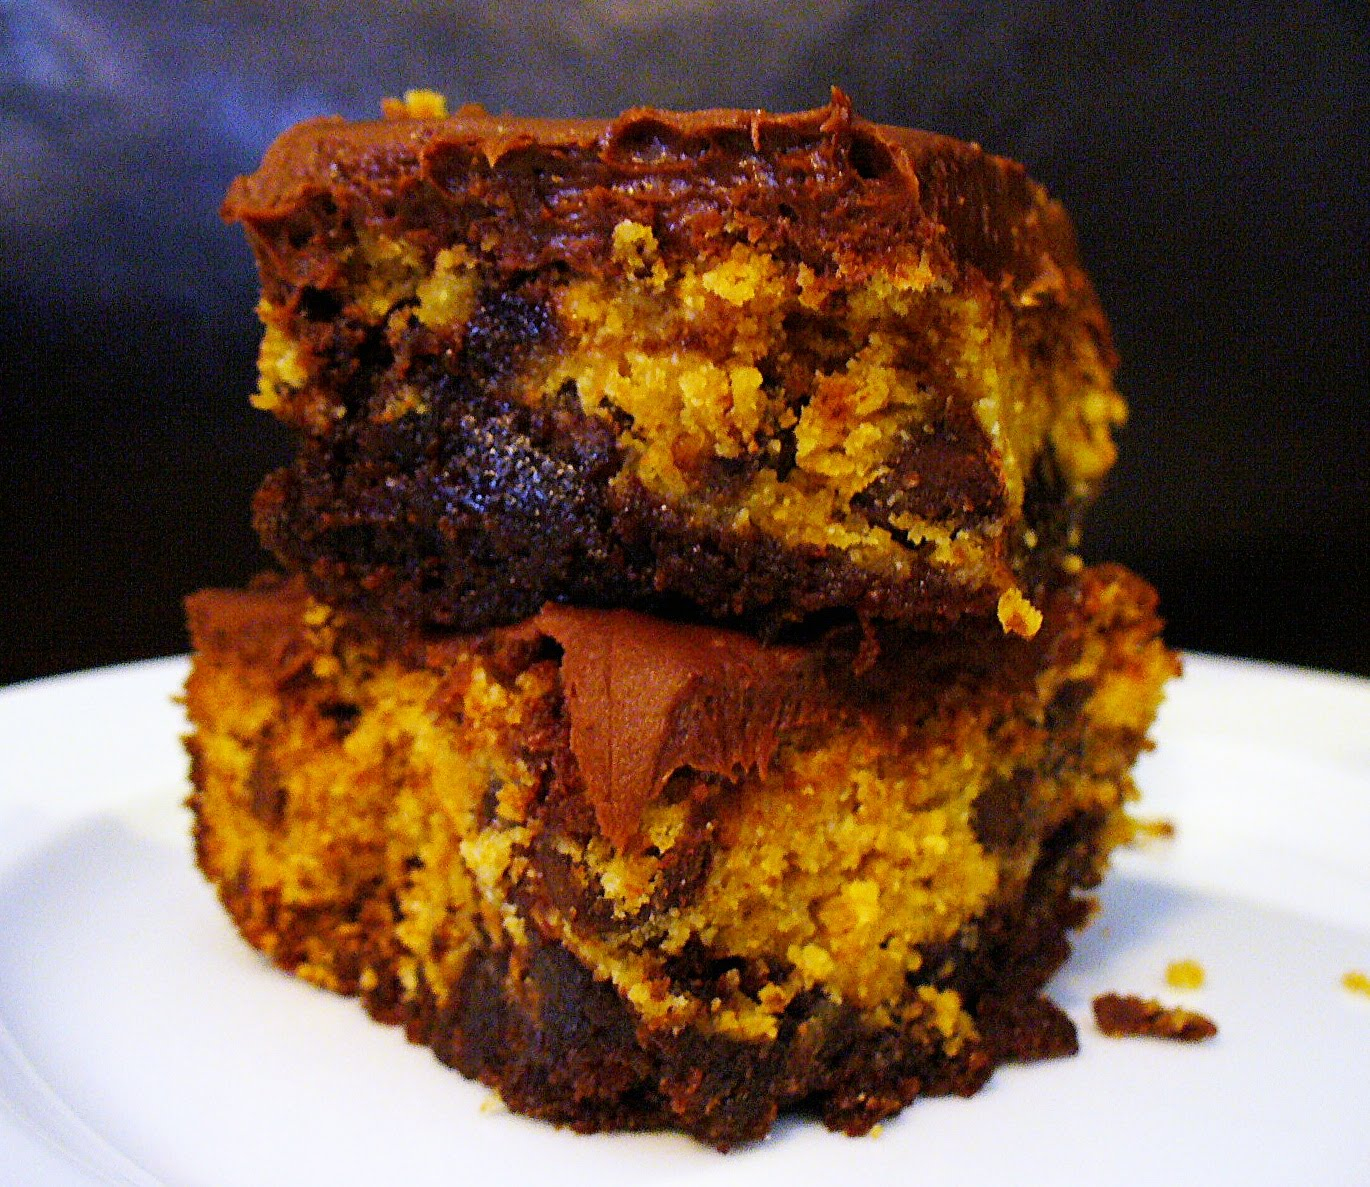 The Lonely Baker: Chocolate Chip Cookie Dough Brownies